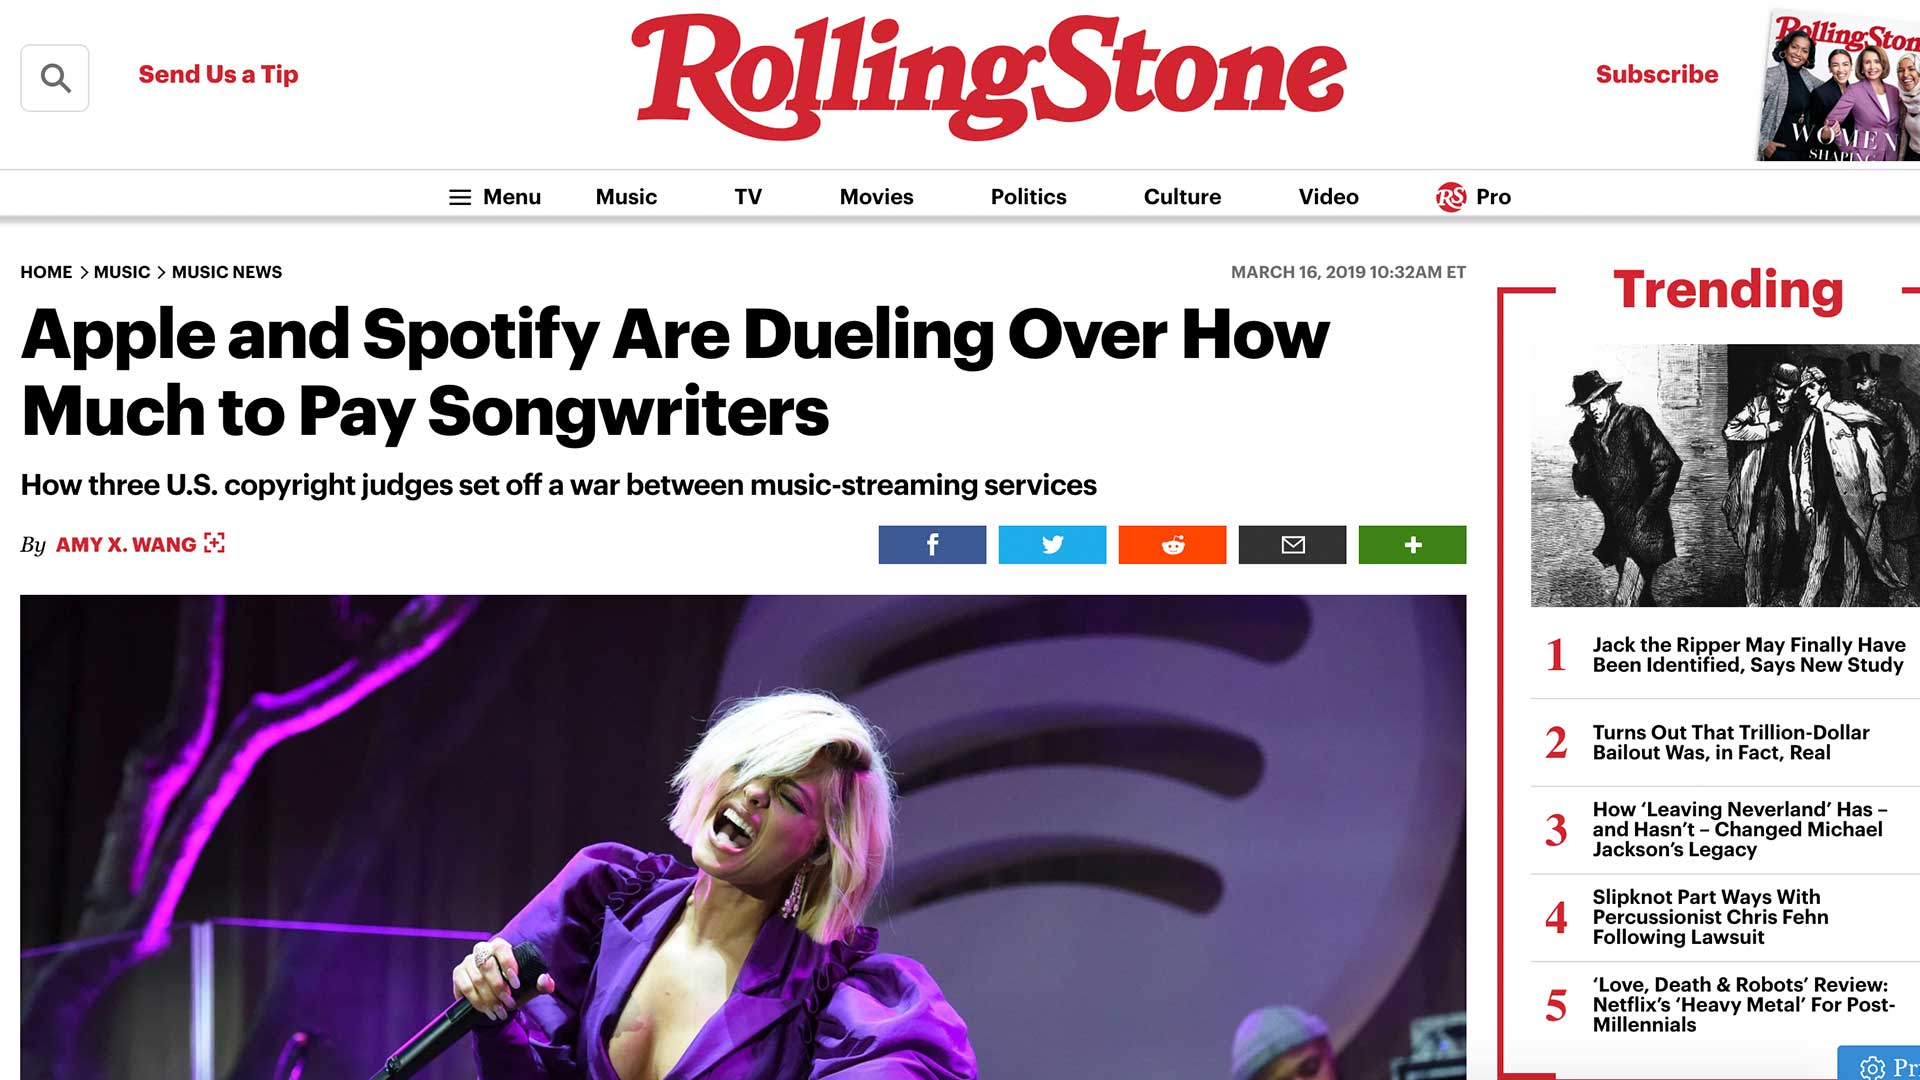 Fairness Rocks News Apple and Spotify Are Dueling Over How Much to Pay Songwriters